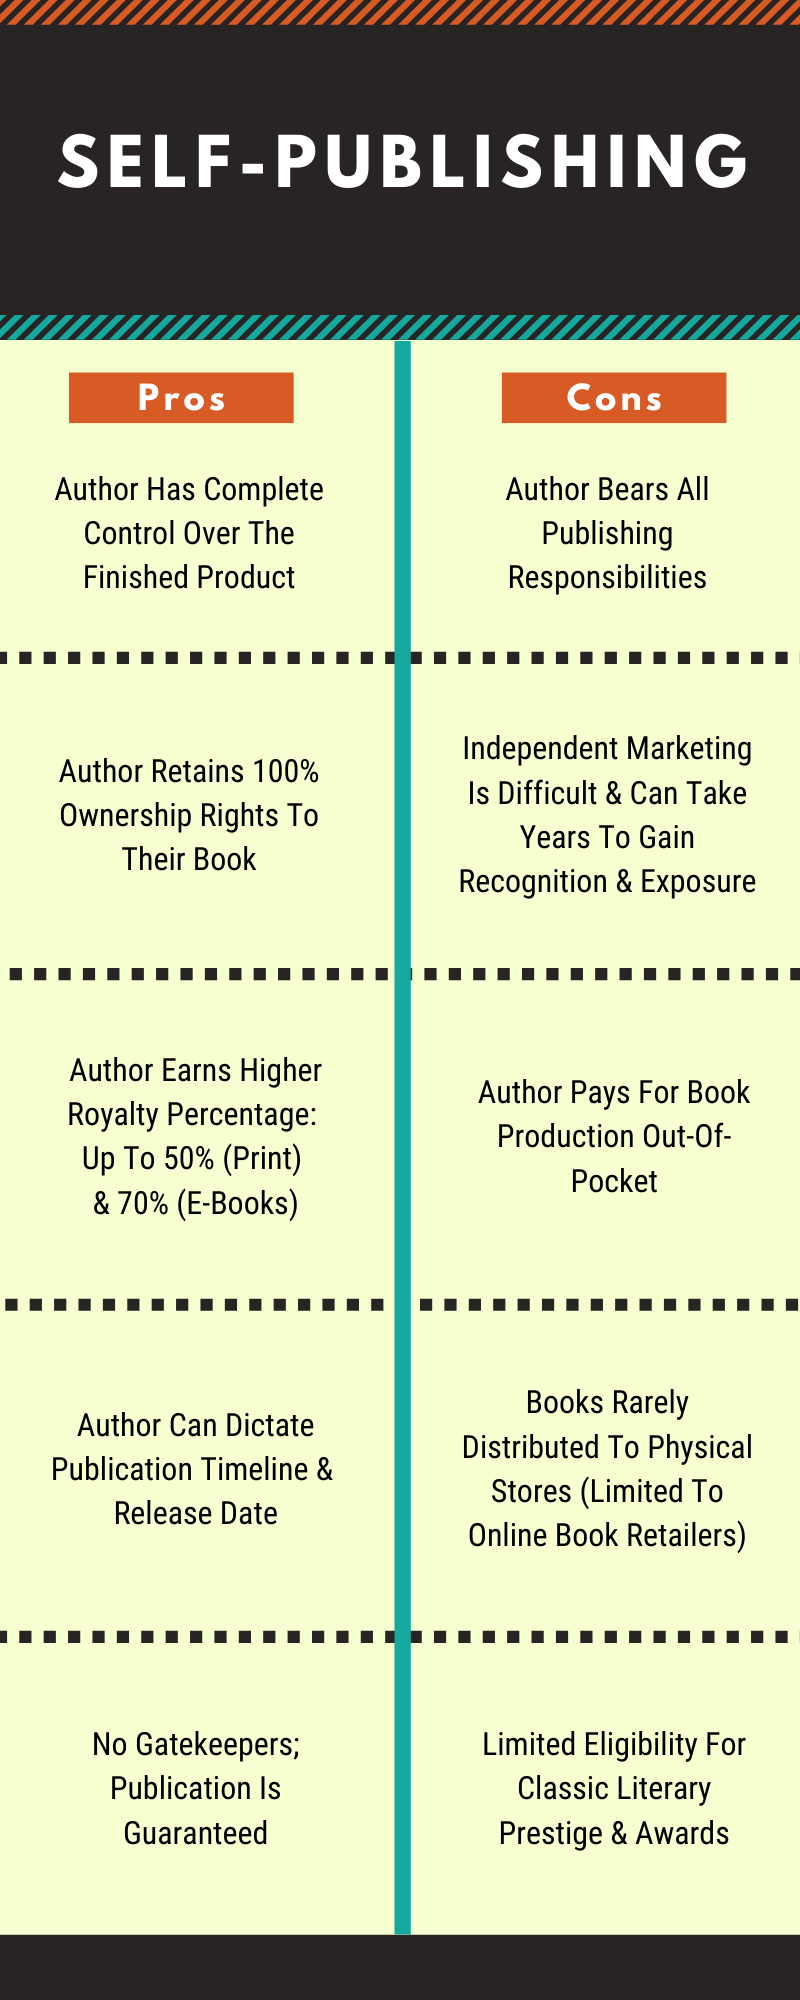 Pros & Cons of Self-Publishing